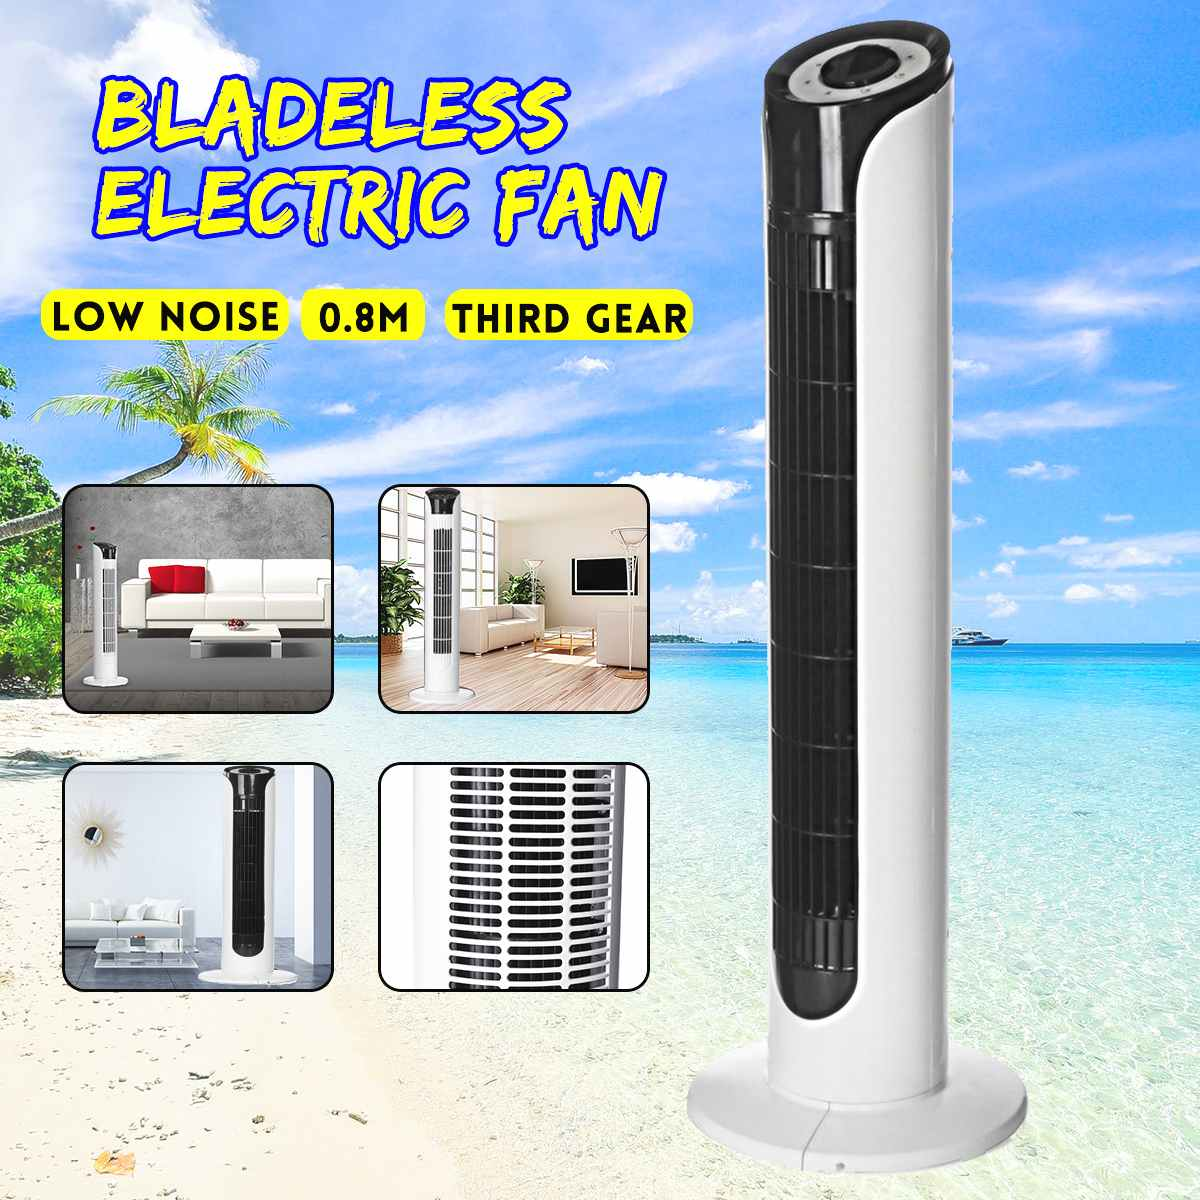 Air Conditioner Conditioning Fan 80cm Bladeless Electric Air Cooler Cooling Living room Bedroom Fan Household Wind AdjustableAir Conditioner Conditioning Fan 80cm Bladeless Electric Air Cooler Cooling Living room Bedroom Fan Household Wind Adjustable